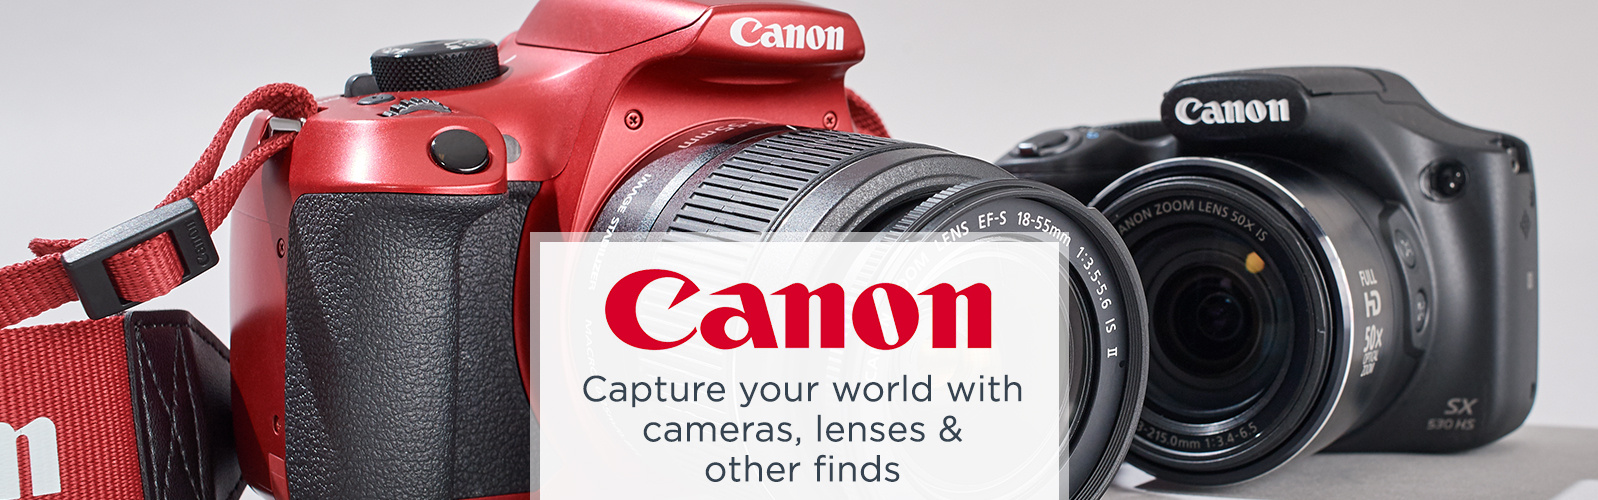 Canon. Capture your world with cameras, lenses & other finds